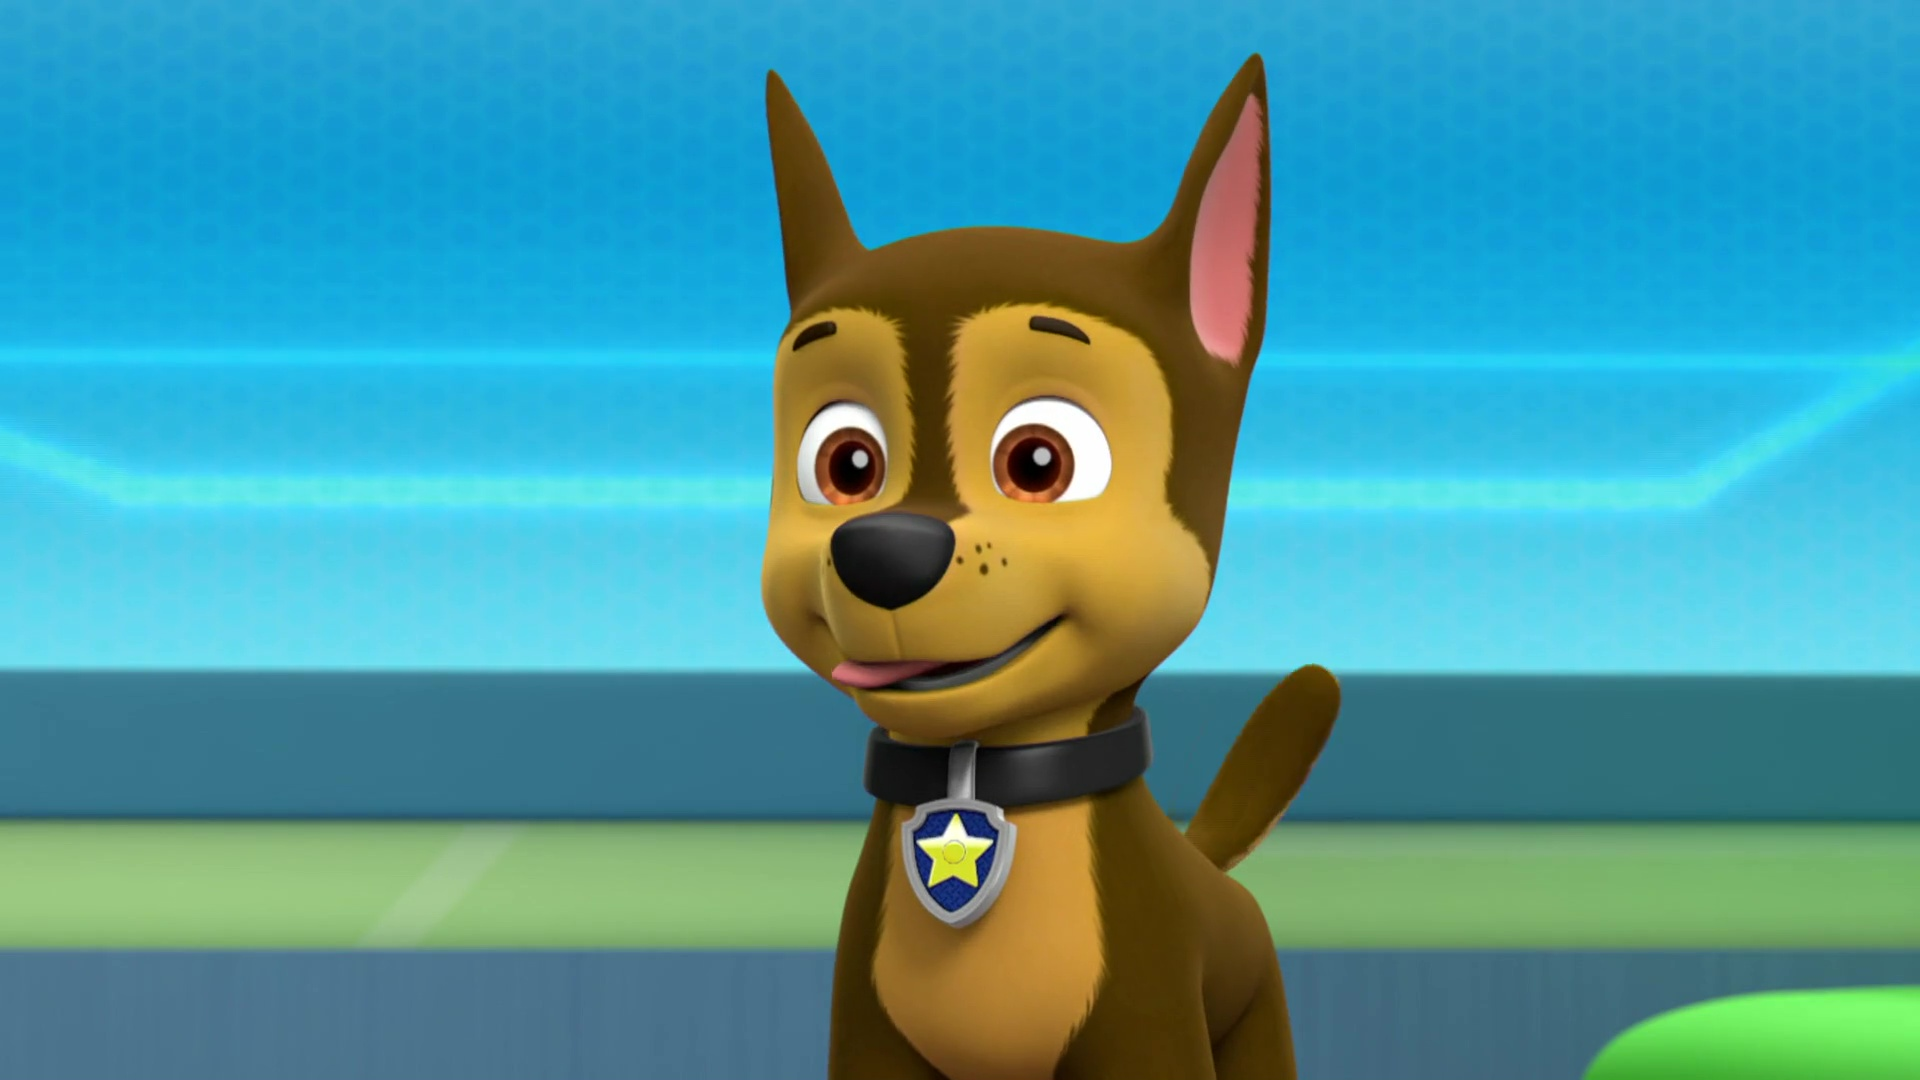 Chase - Skye and Chase - PAW Patrol Photo (41145969) - Fanpop